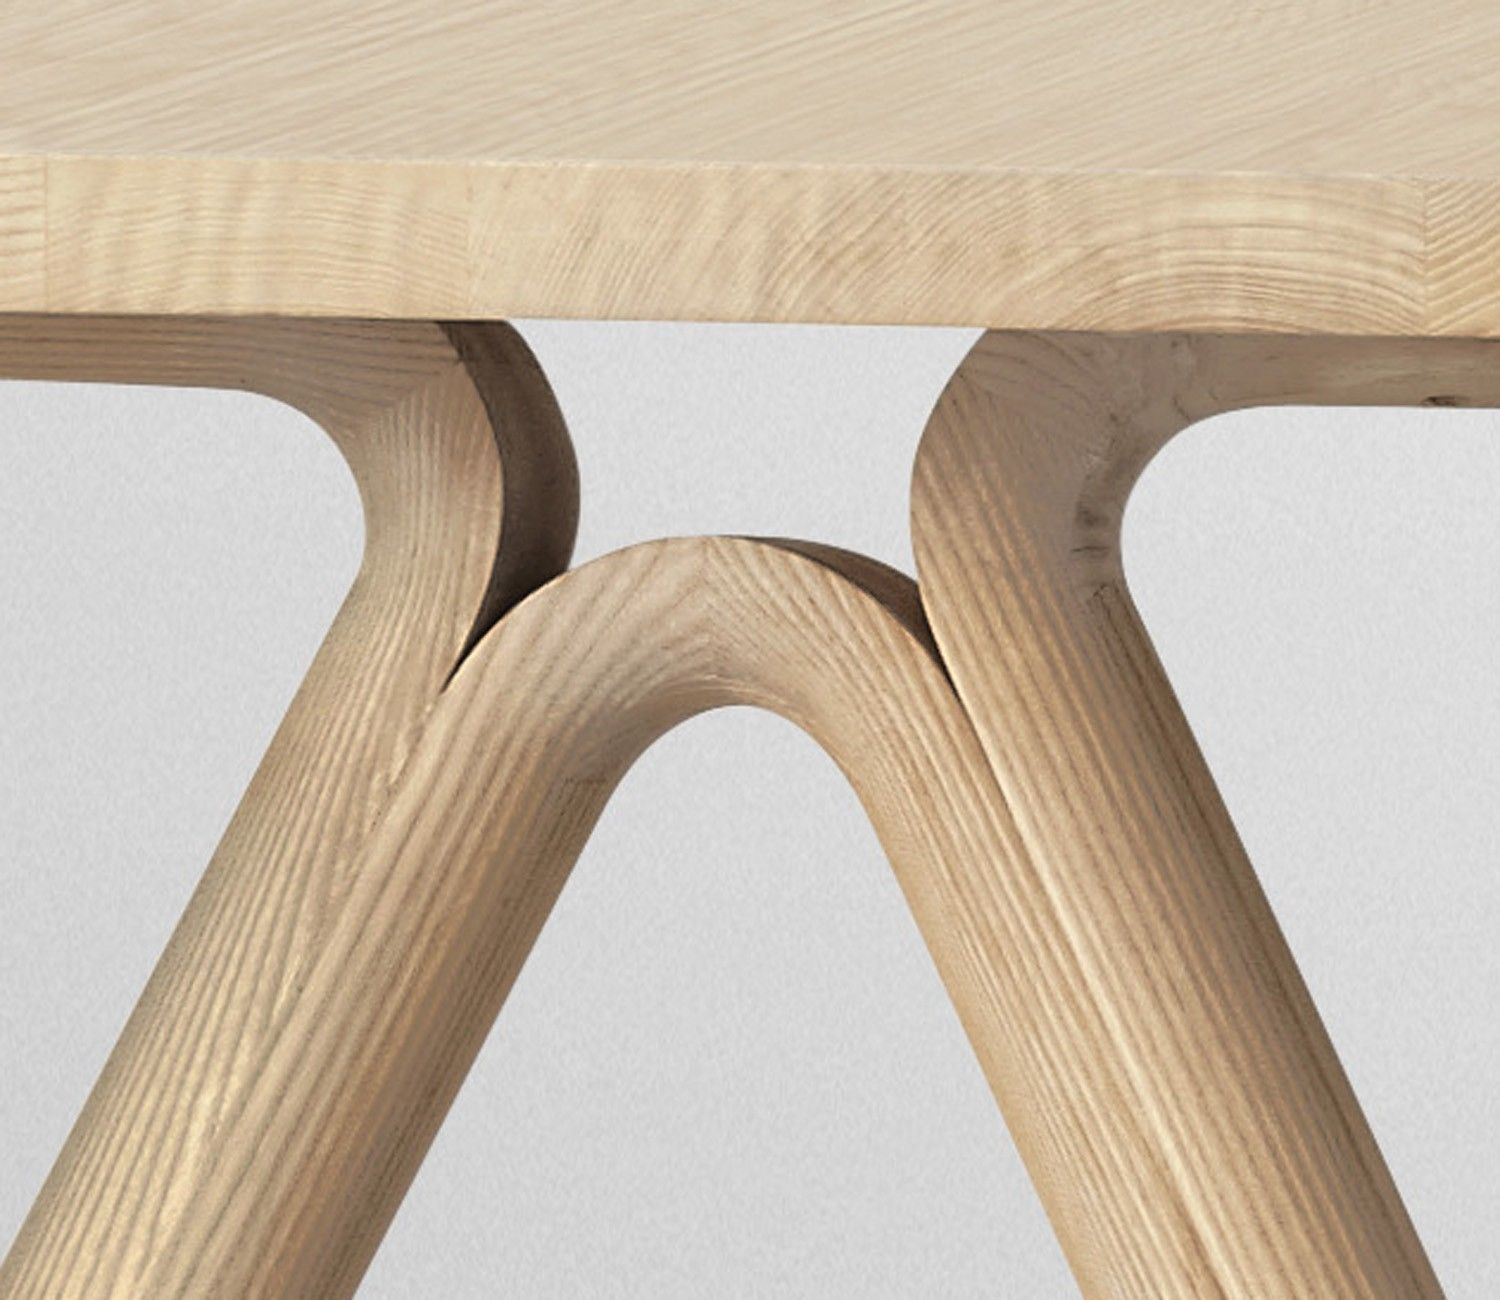 Furniture Design Details furniture, design design and table furniture on pinterest